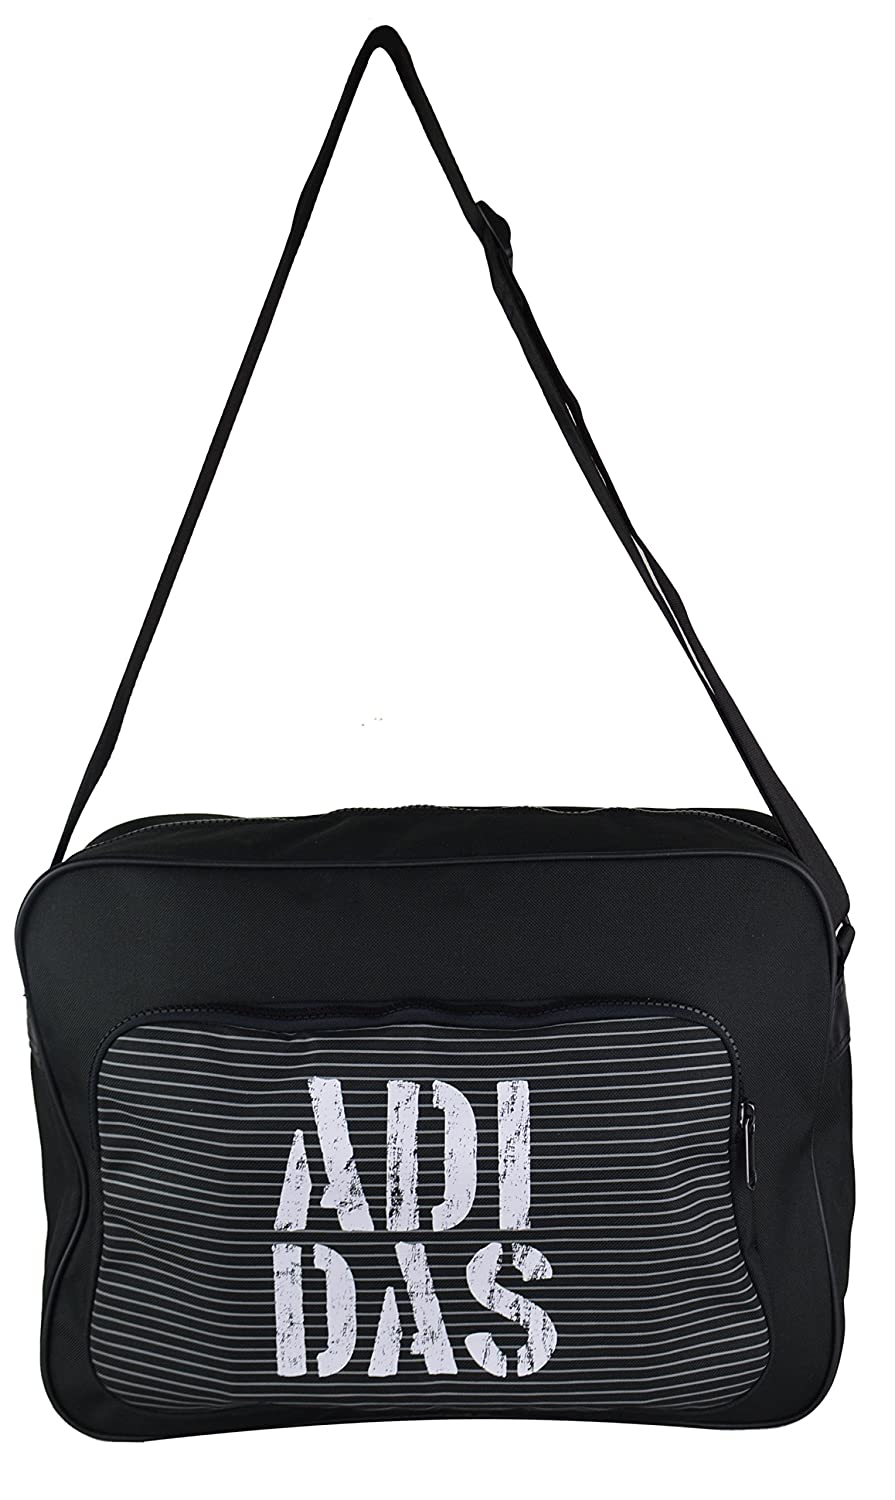 Adidas Originals Unisex Neo Street Graphic Messenger Bag, Black, 38 cm x 28 cm x 11 cm